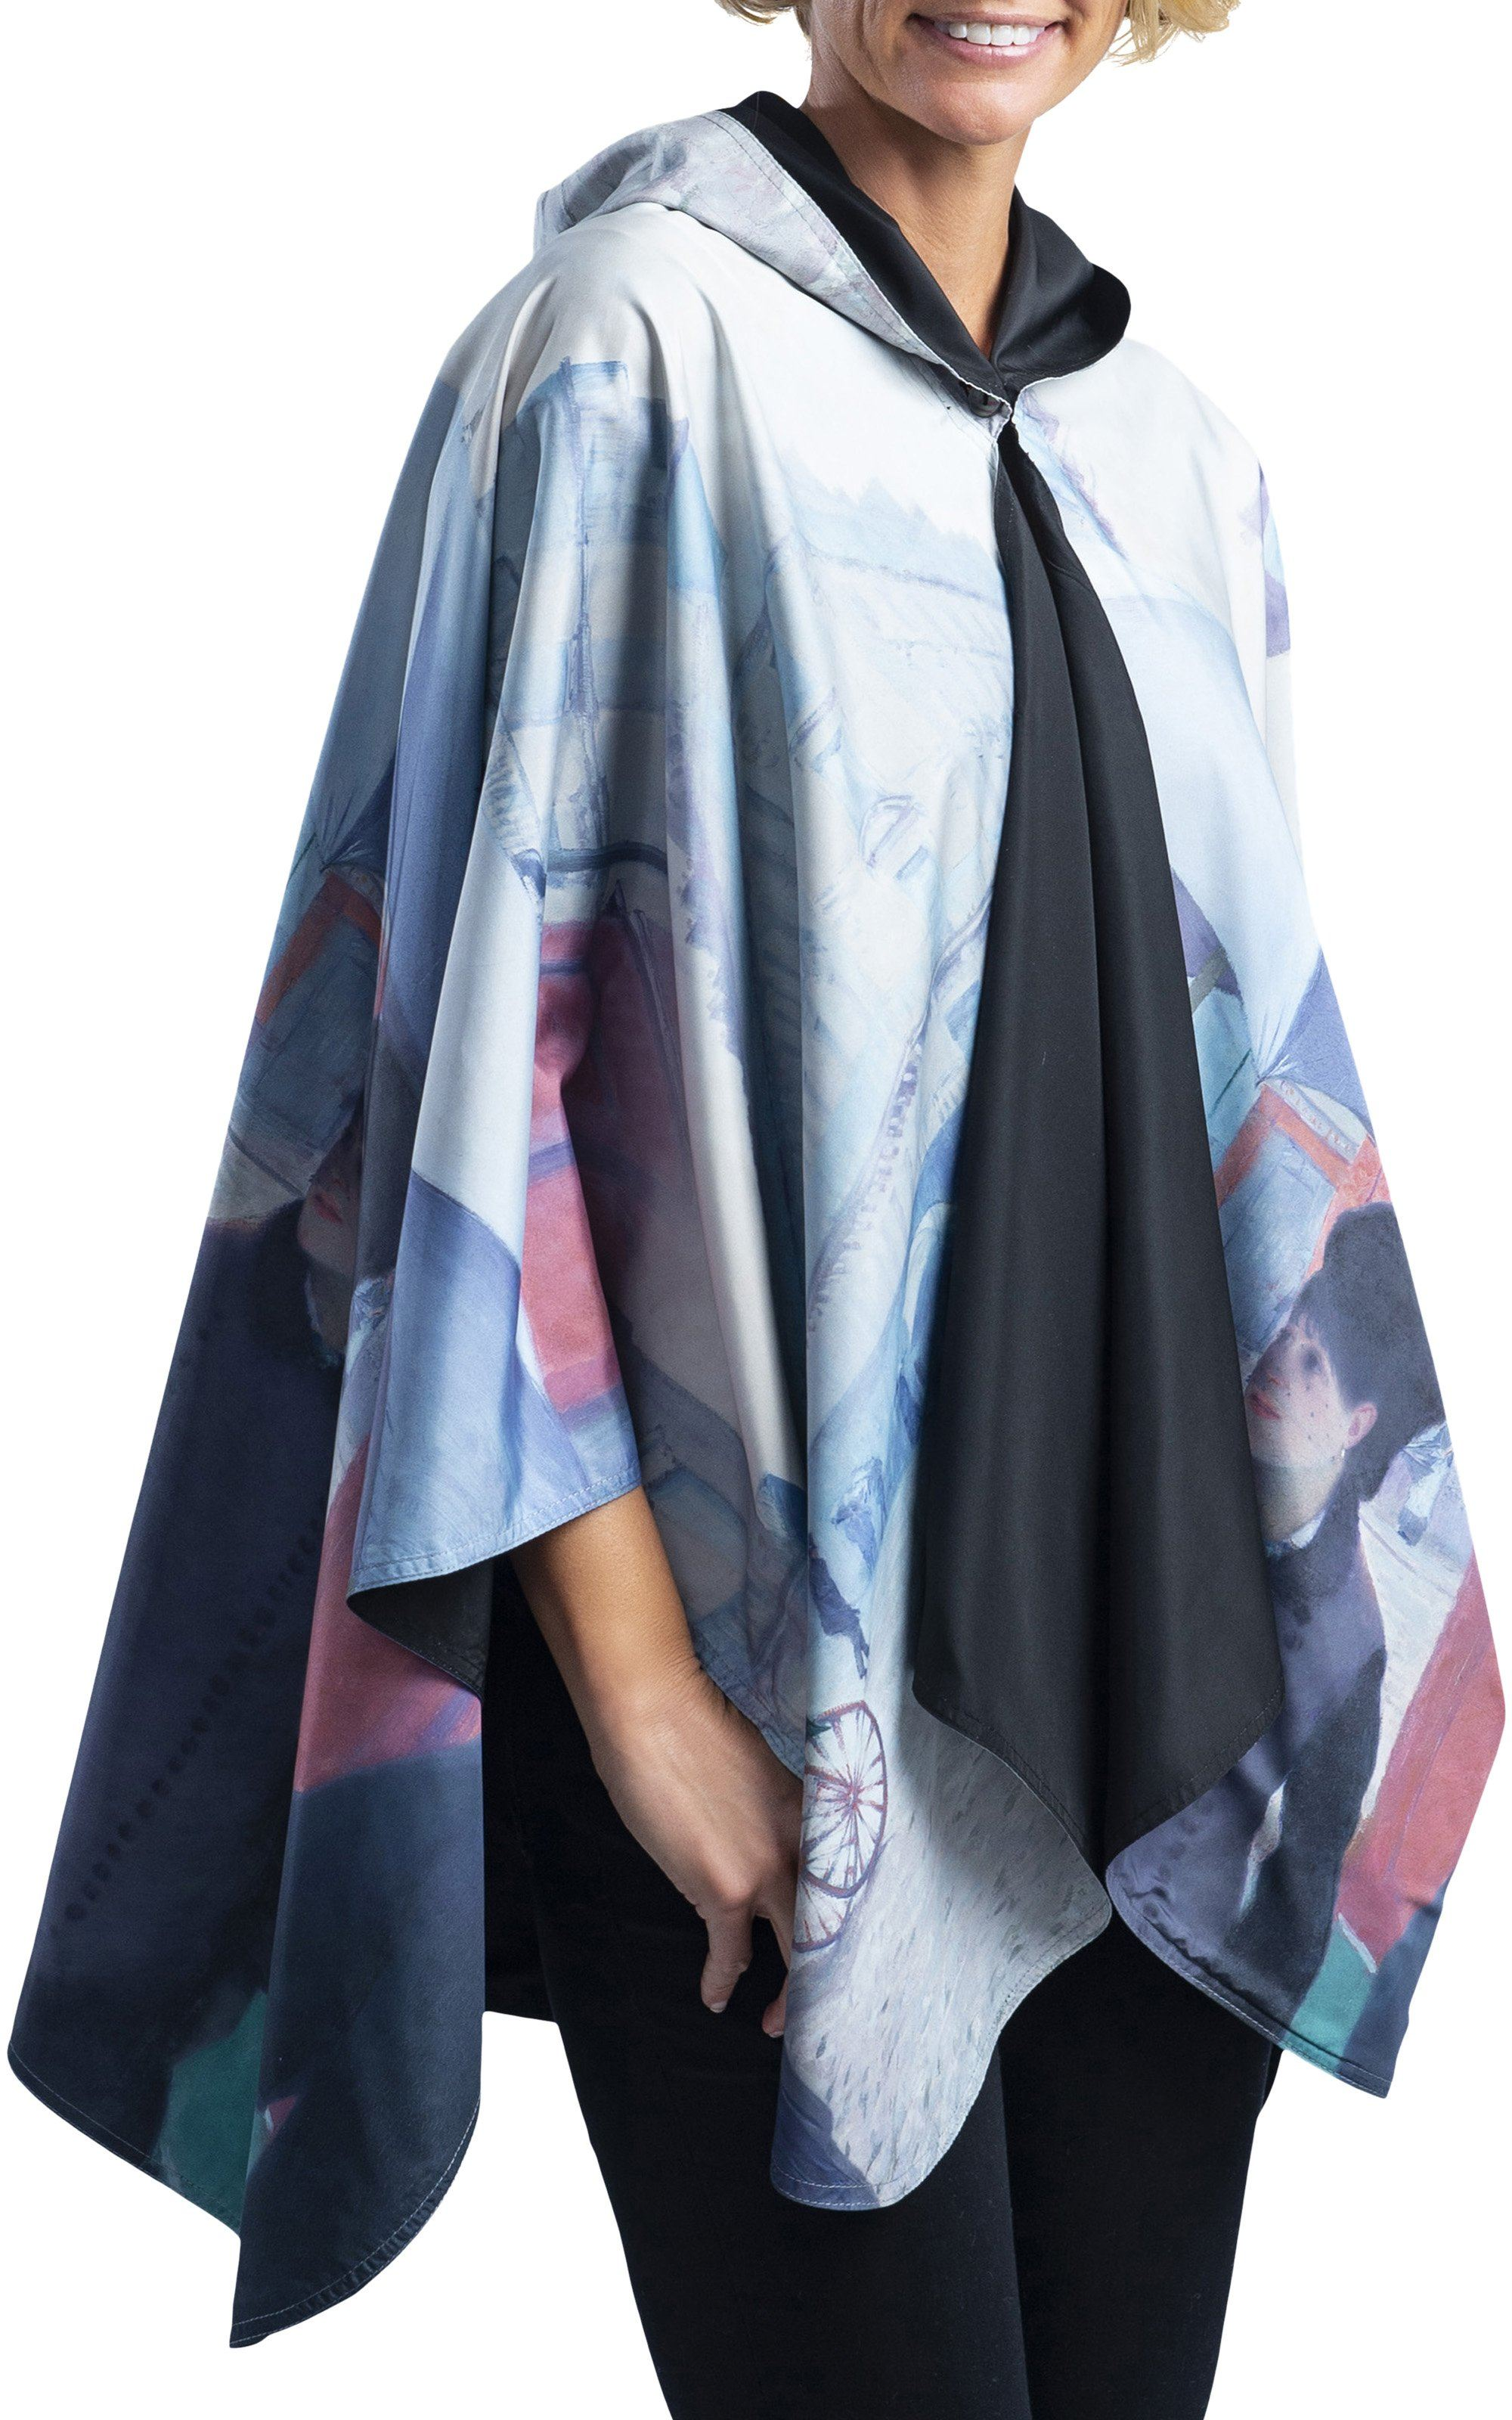 Multi-color reversible cape that protects from rain and wind; the womens raincoat alternative is worn by a woman. The rain cape has images of vintage people wearing top hats and Victorian garb while walking in the rain.